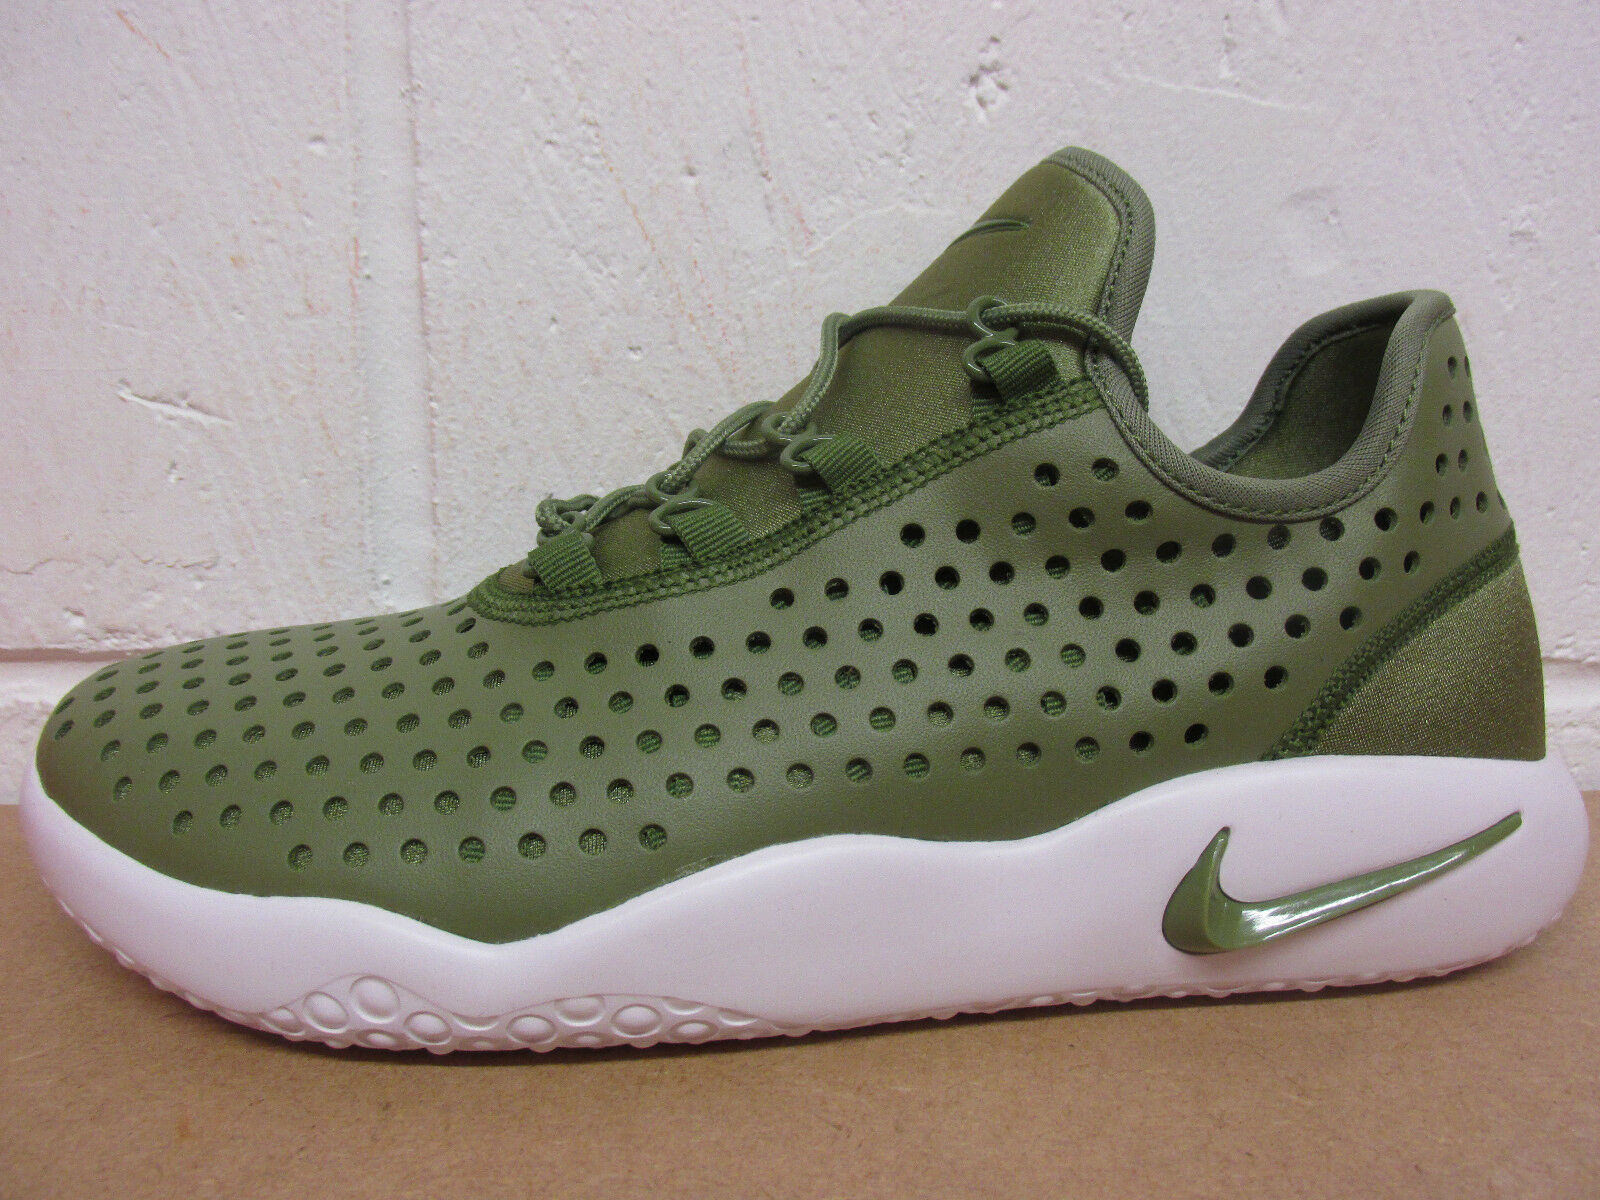 Nike FL-RUE Mens 300 Running Trainers 880994 300 Mens Sneakers shoes 32d515